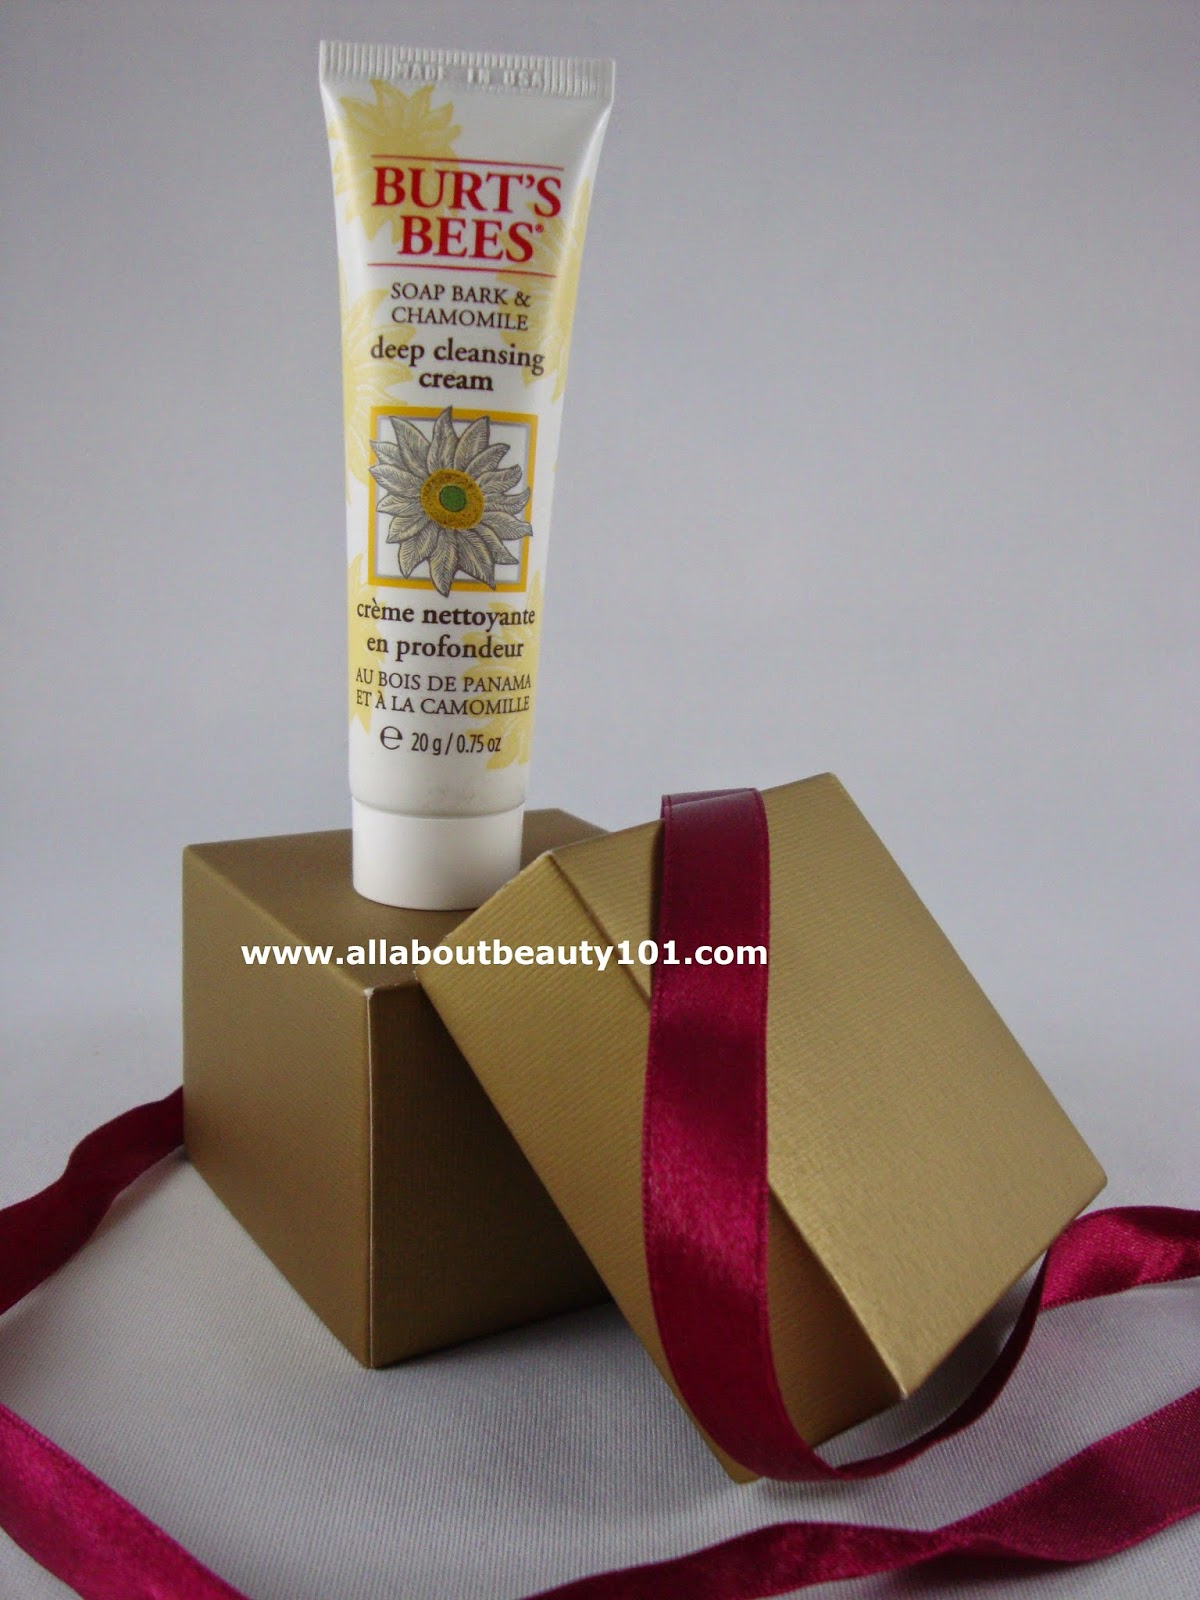 Soap Bark And Chamomile Deep Cleansing Cream by Burt's Bees #3